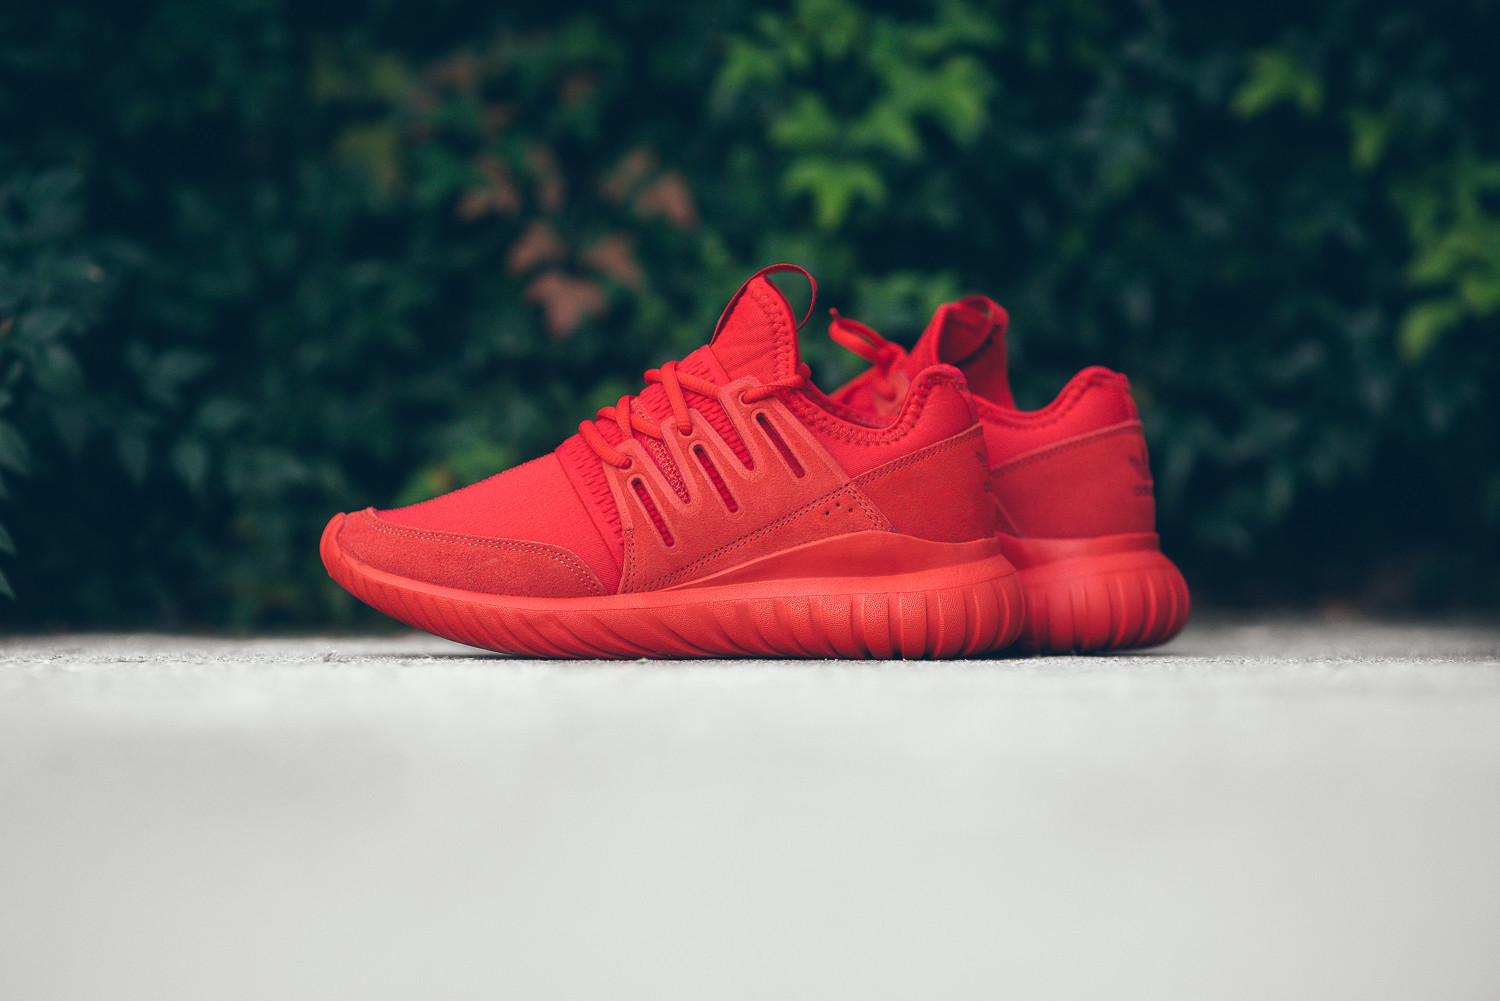 adidas Originals Tubular Radial \'Red October\'